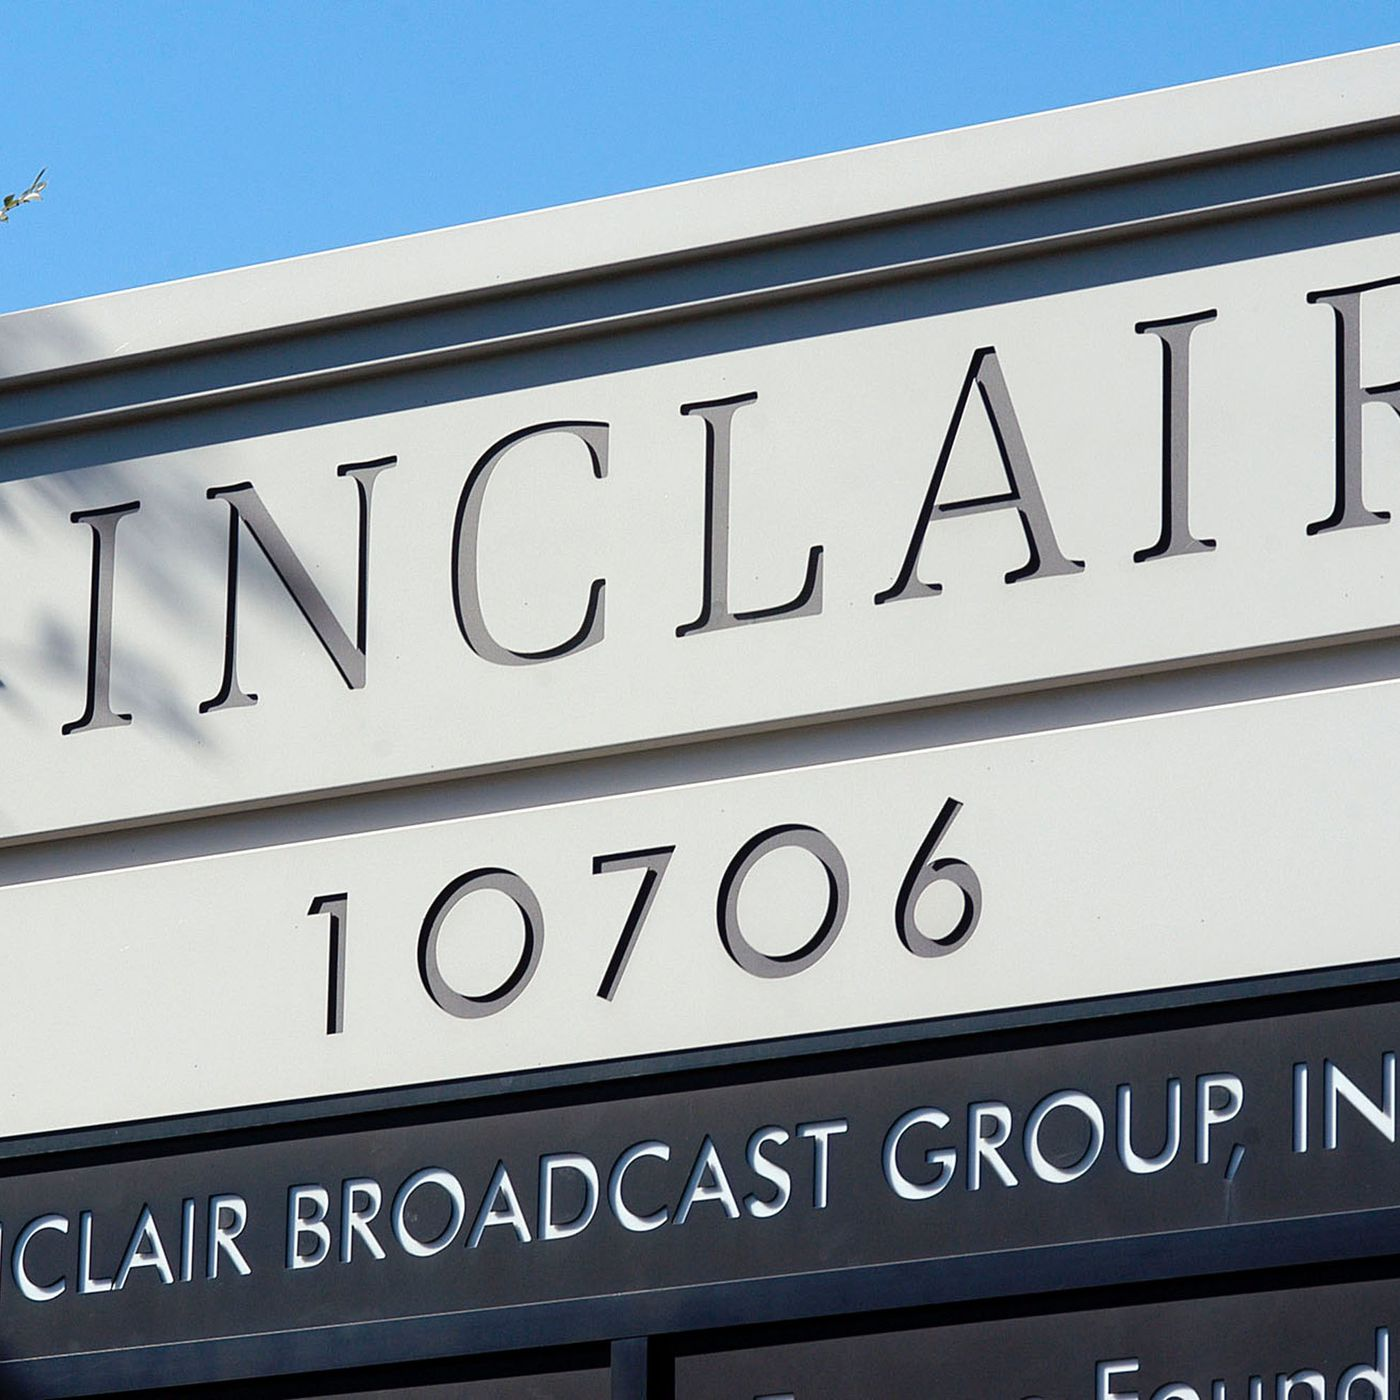 Sinclair, the pro-Trump, conservative company taking over